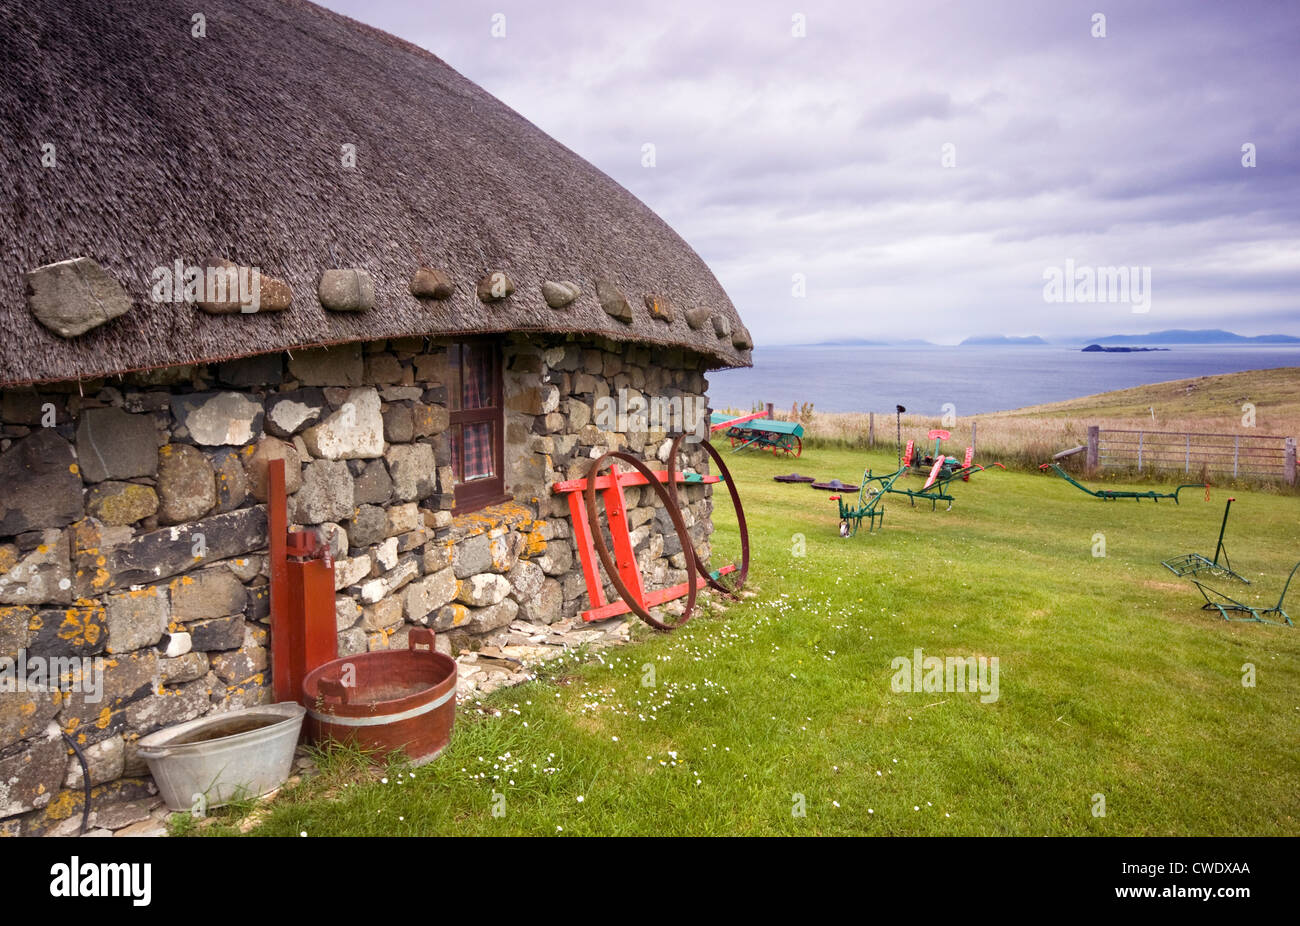 A traditional croft building at the Museum of Island Life on the Isle of Skye, Scotland, UK - Stock Image